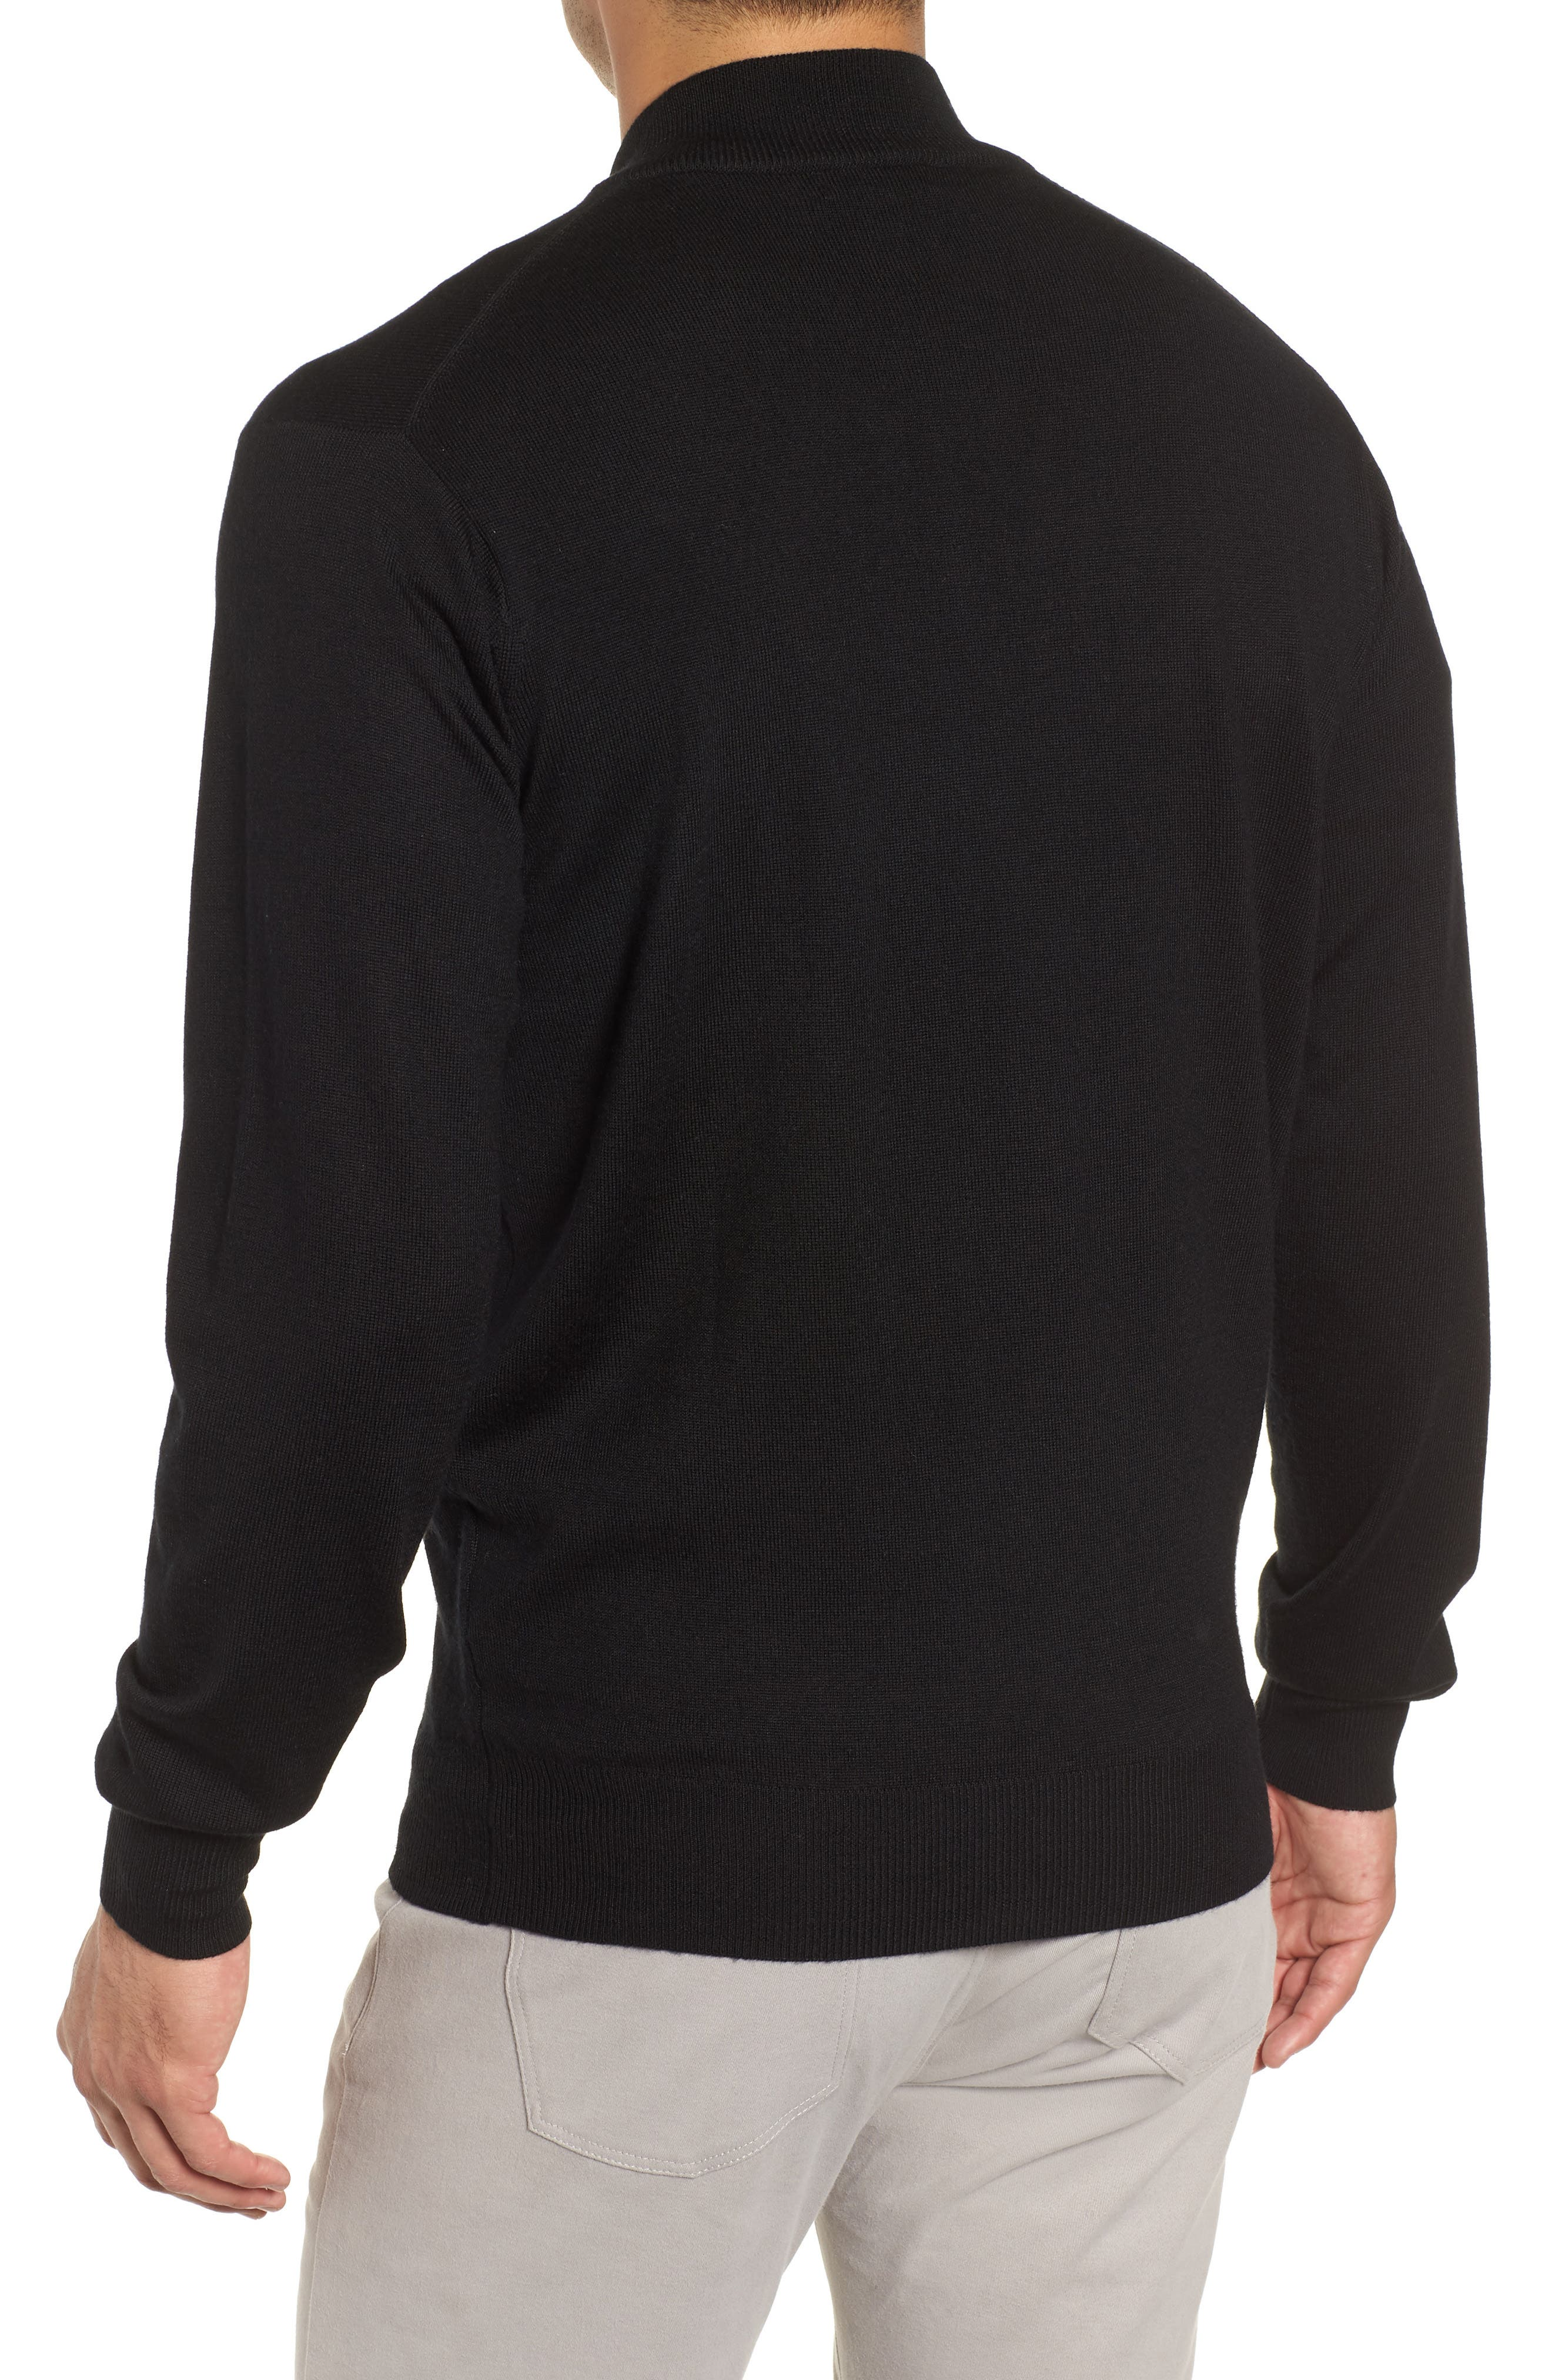 Crown Soft Wool Blend Quarter Zip Sweater,                             Alternate thumbnail 2, color,                             001